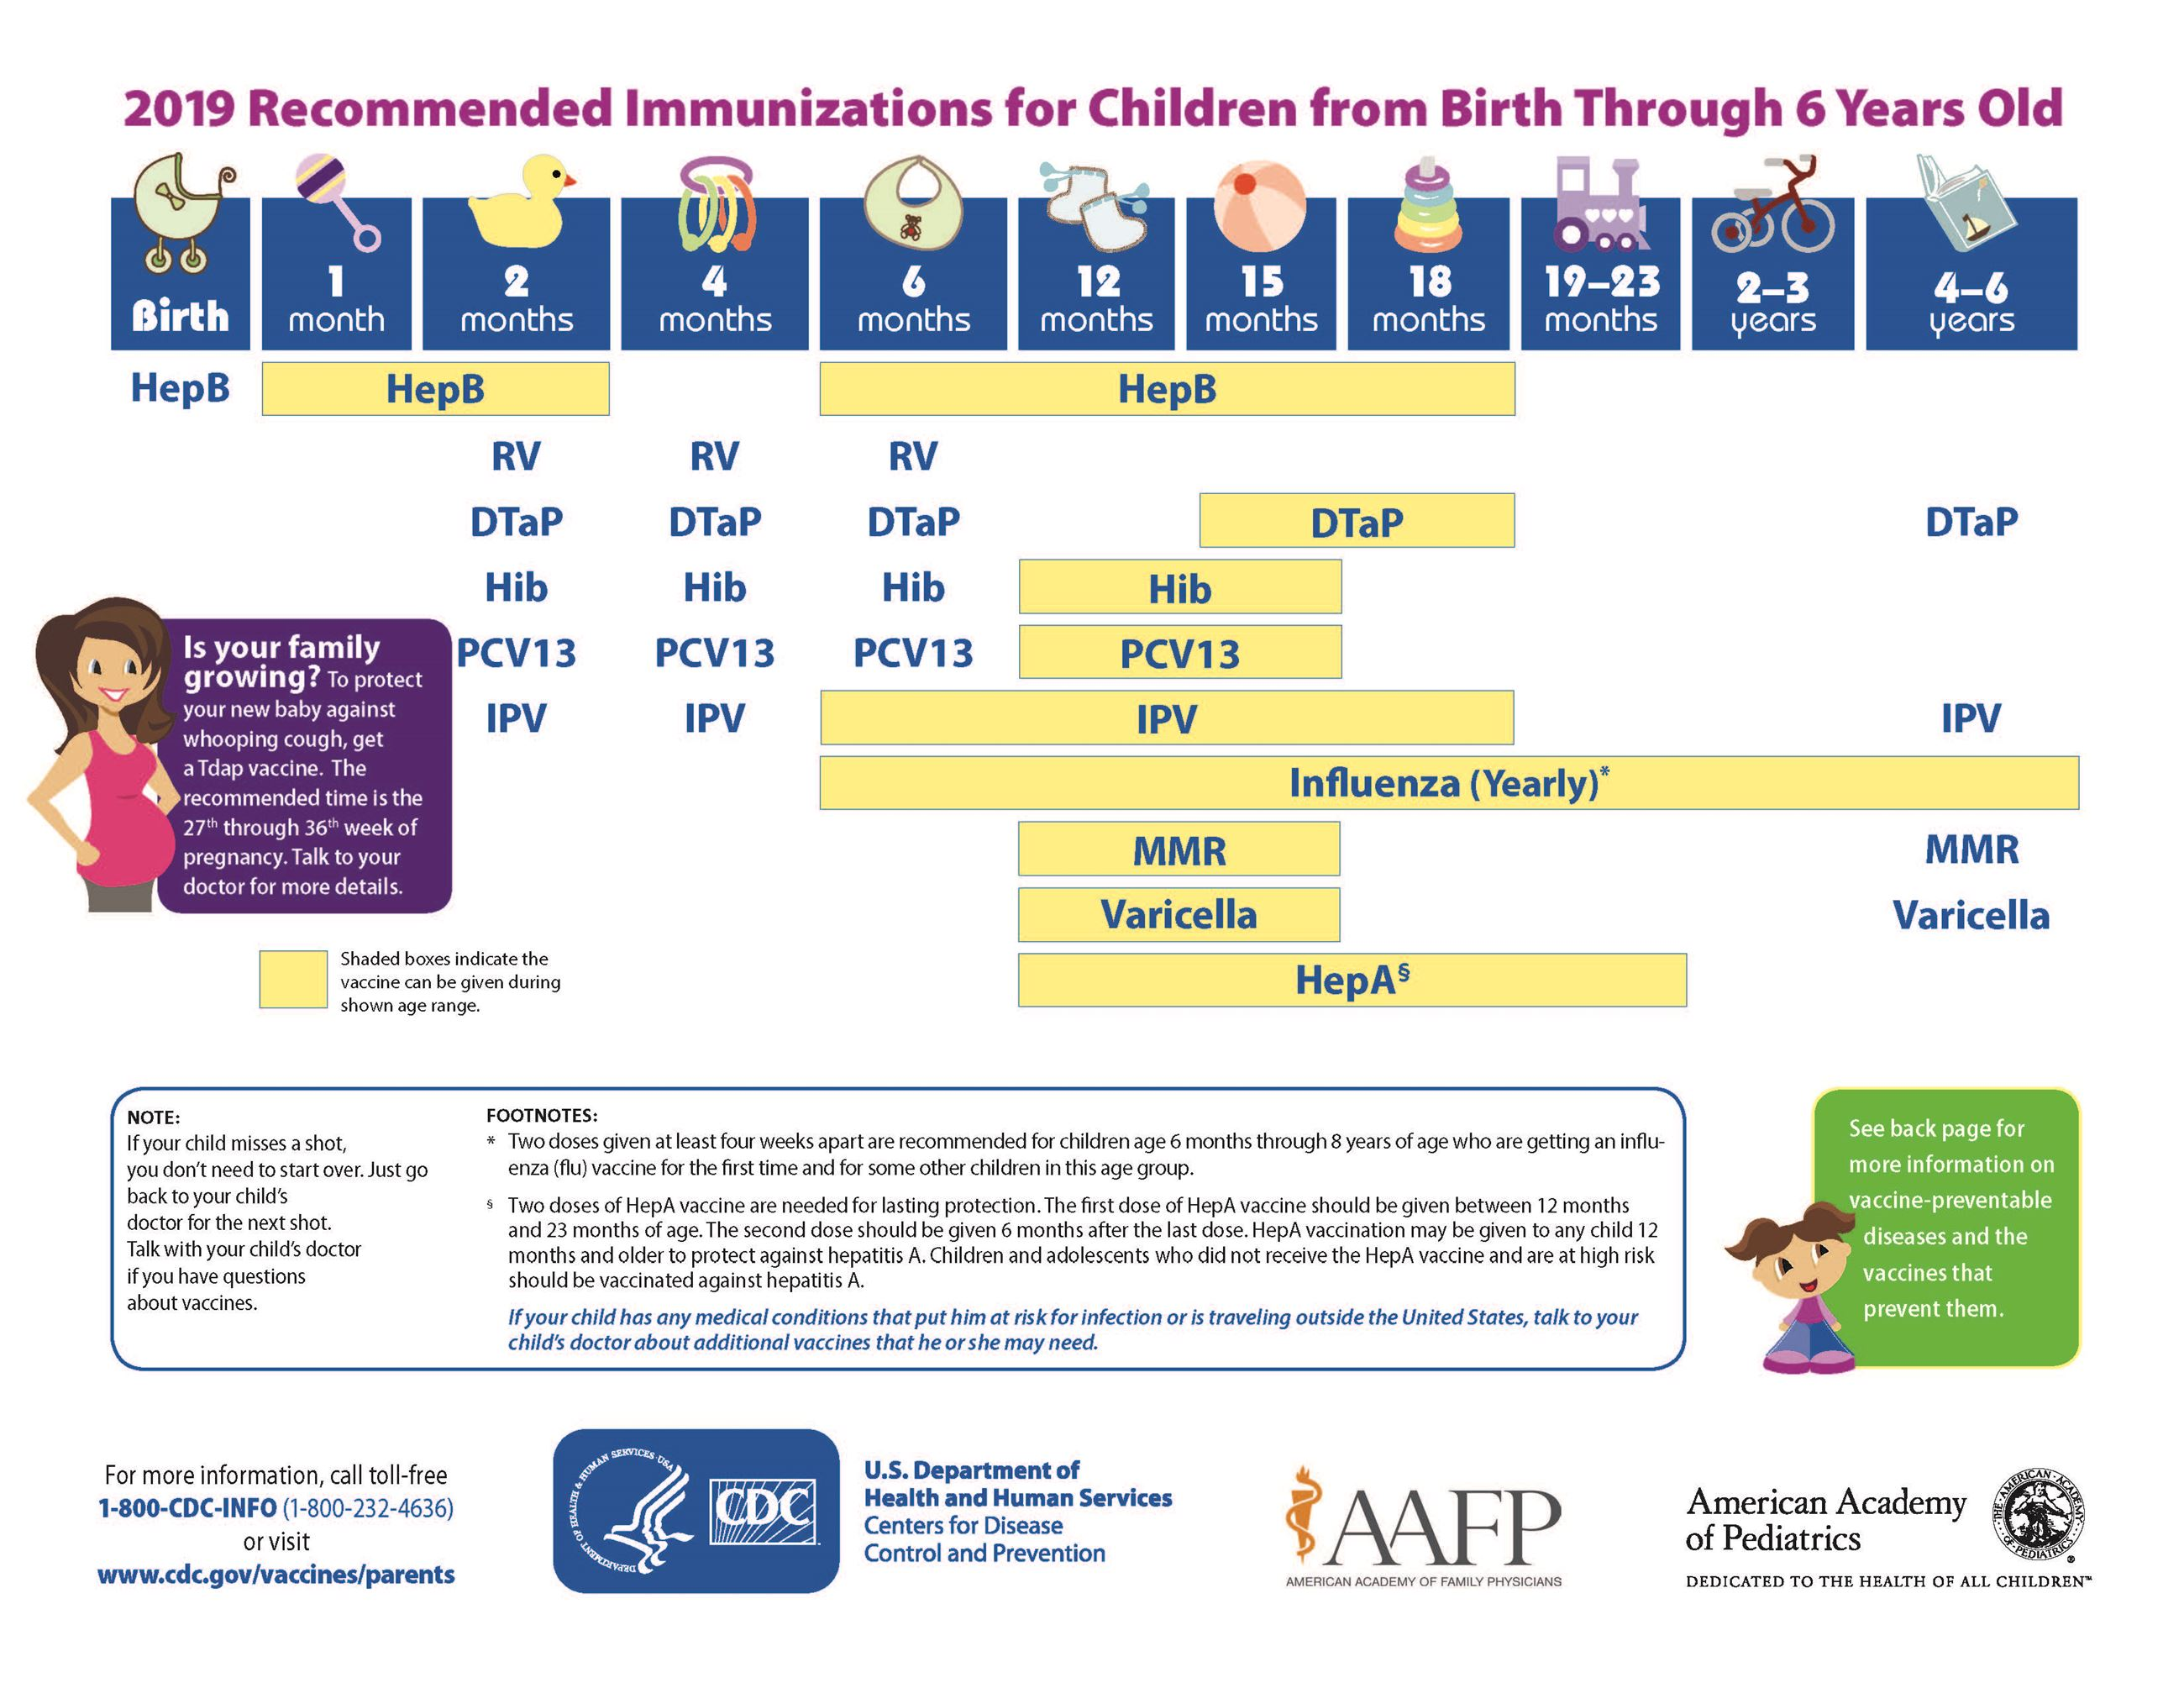 A chart of the recommended immunizations for children up to age 6